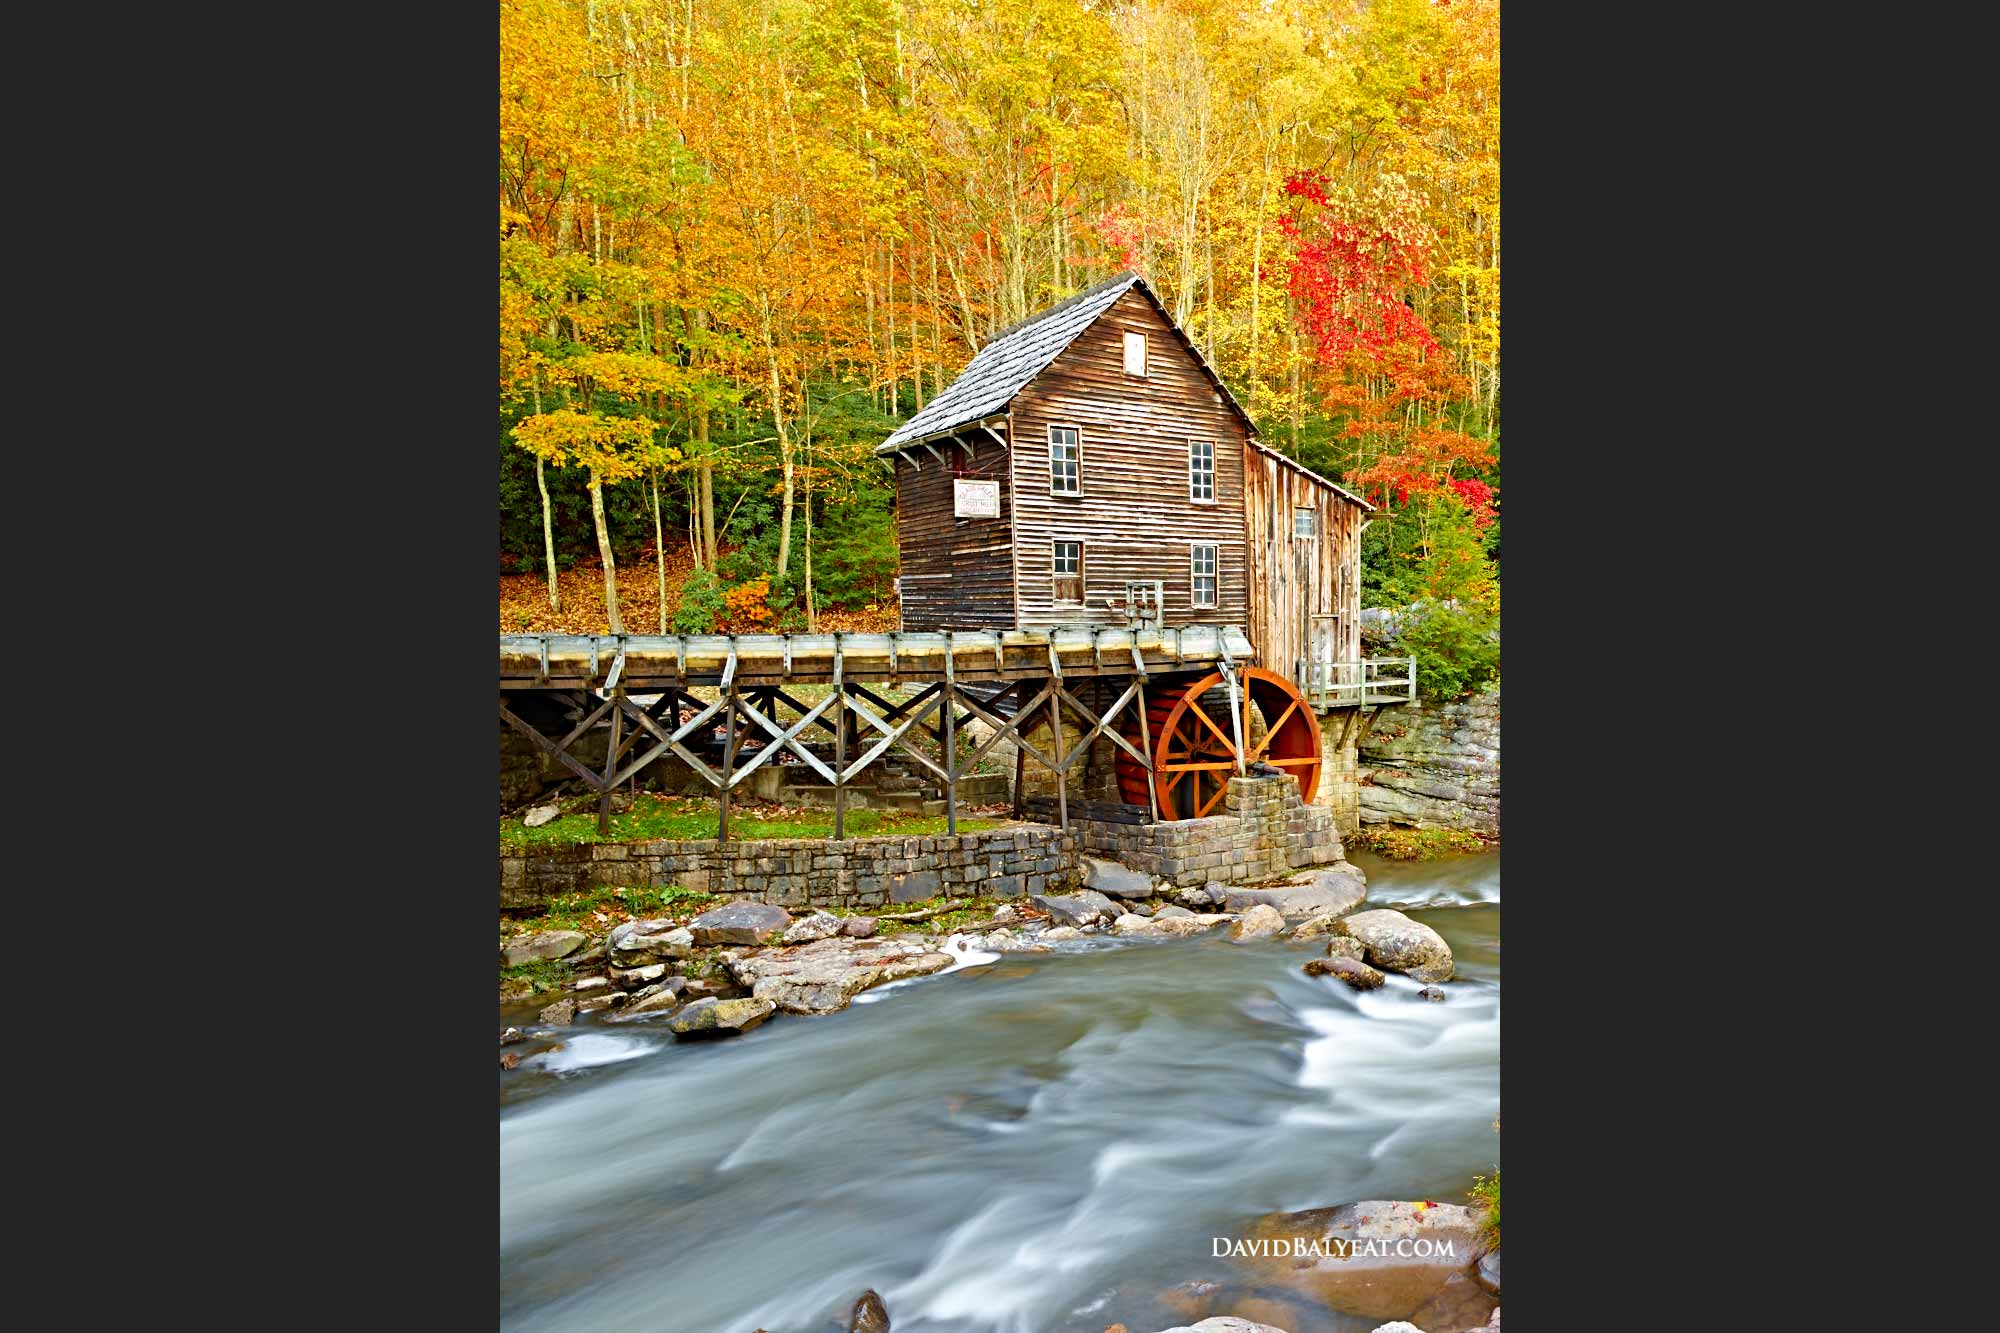 Babcock State Park Fall Foliage Glade Creek Grist Mill West Virginia High Definition HD Photography